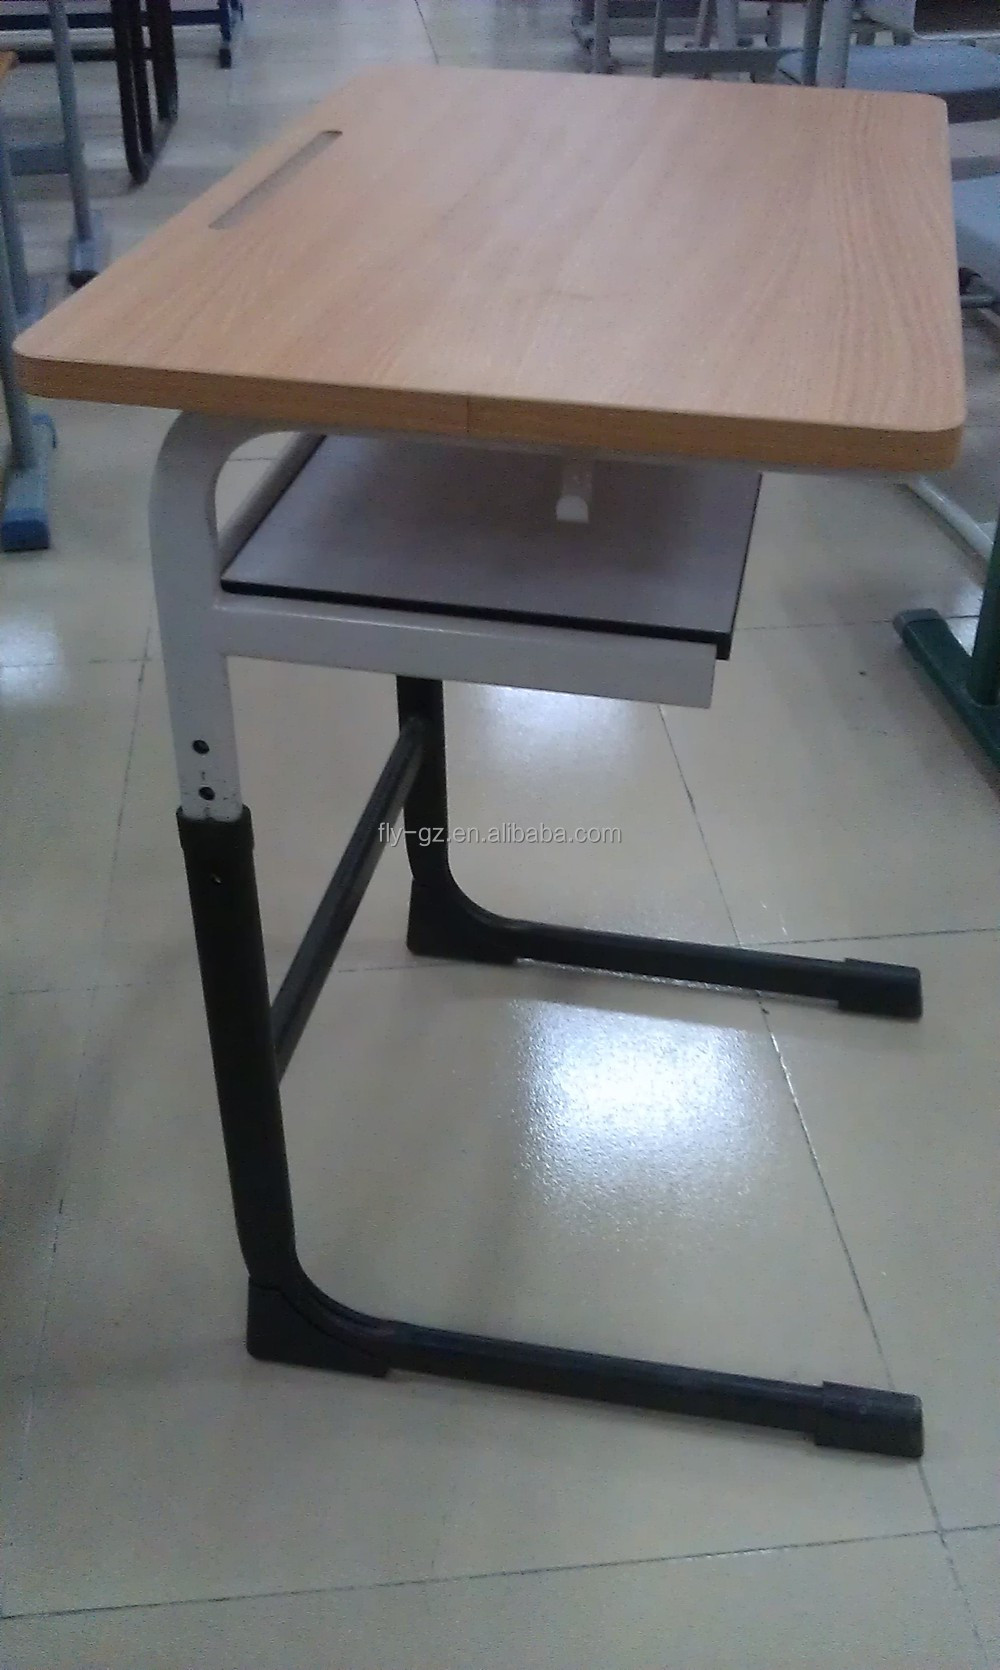 Modern school desk and chair - Height Adjustable Single Modern School Desk And Chair School Desk And Chair In School Sets